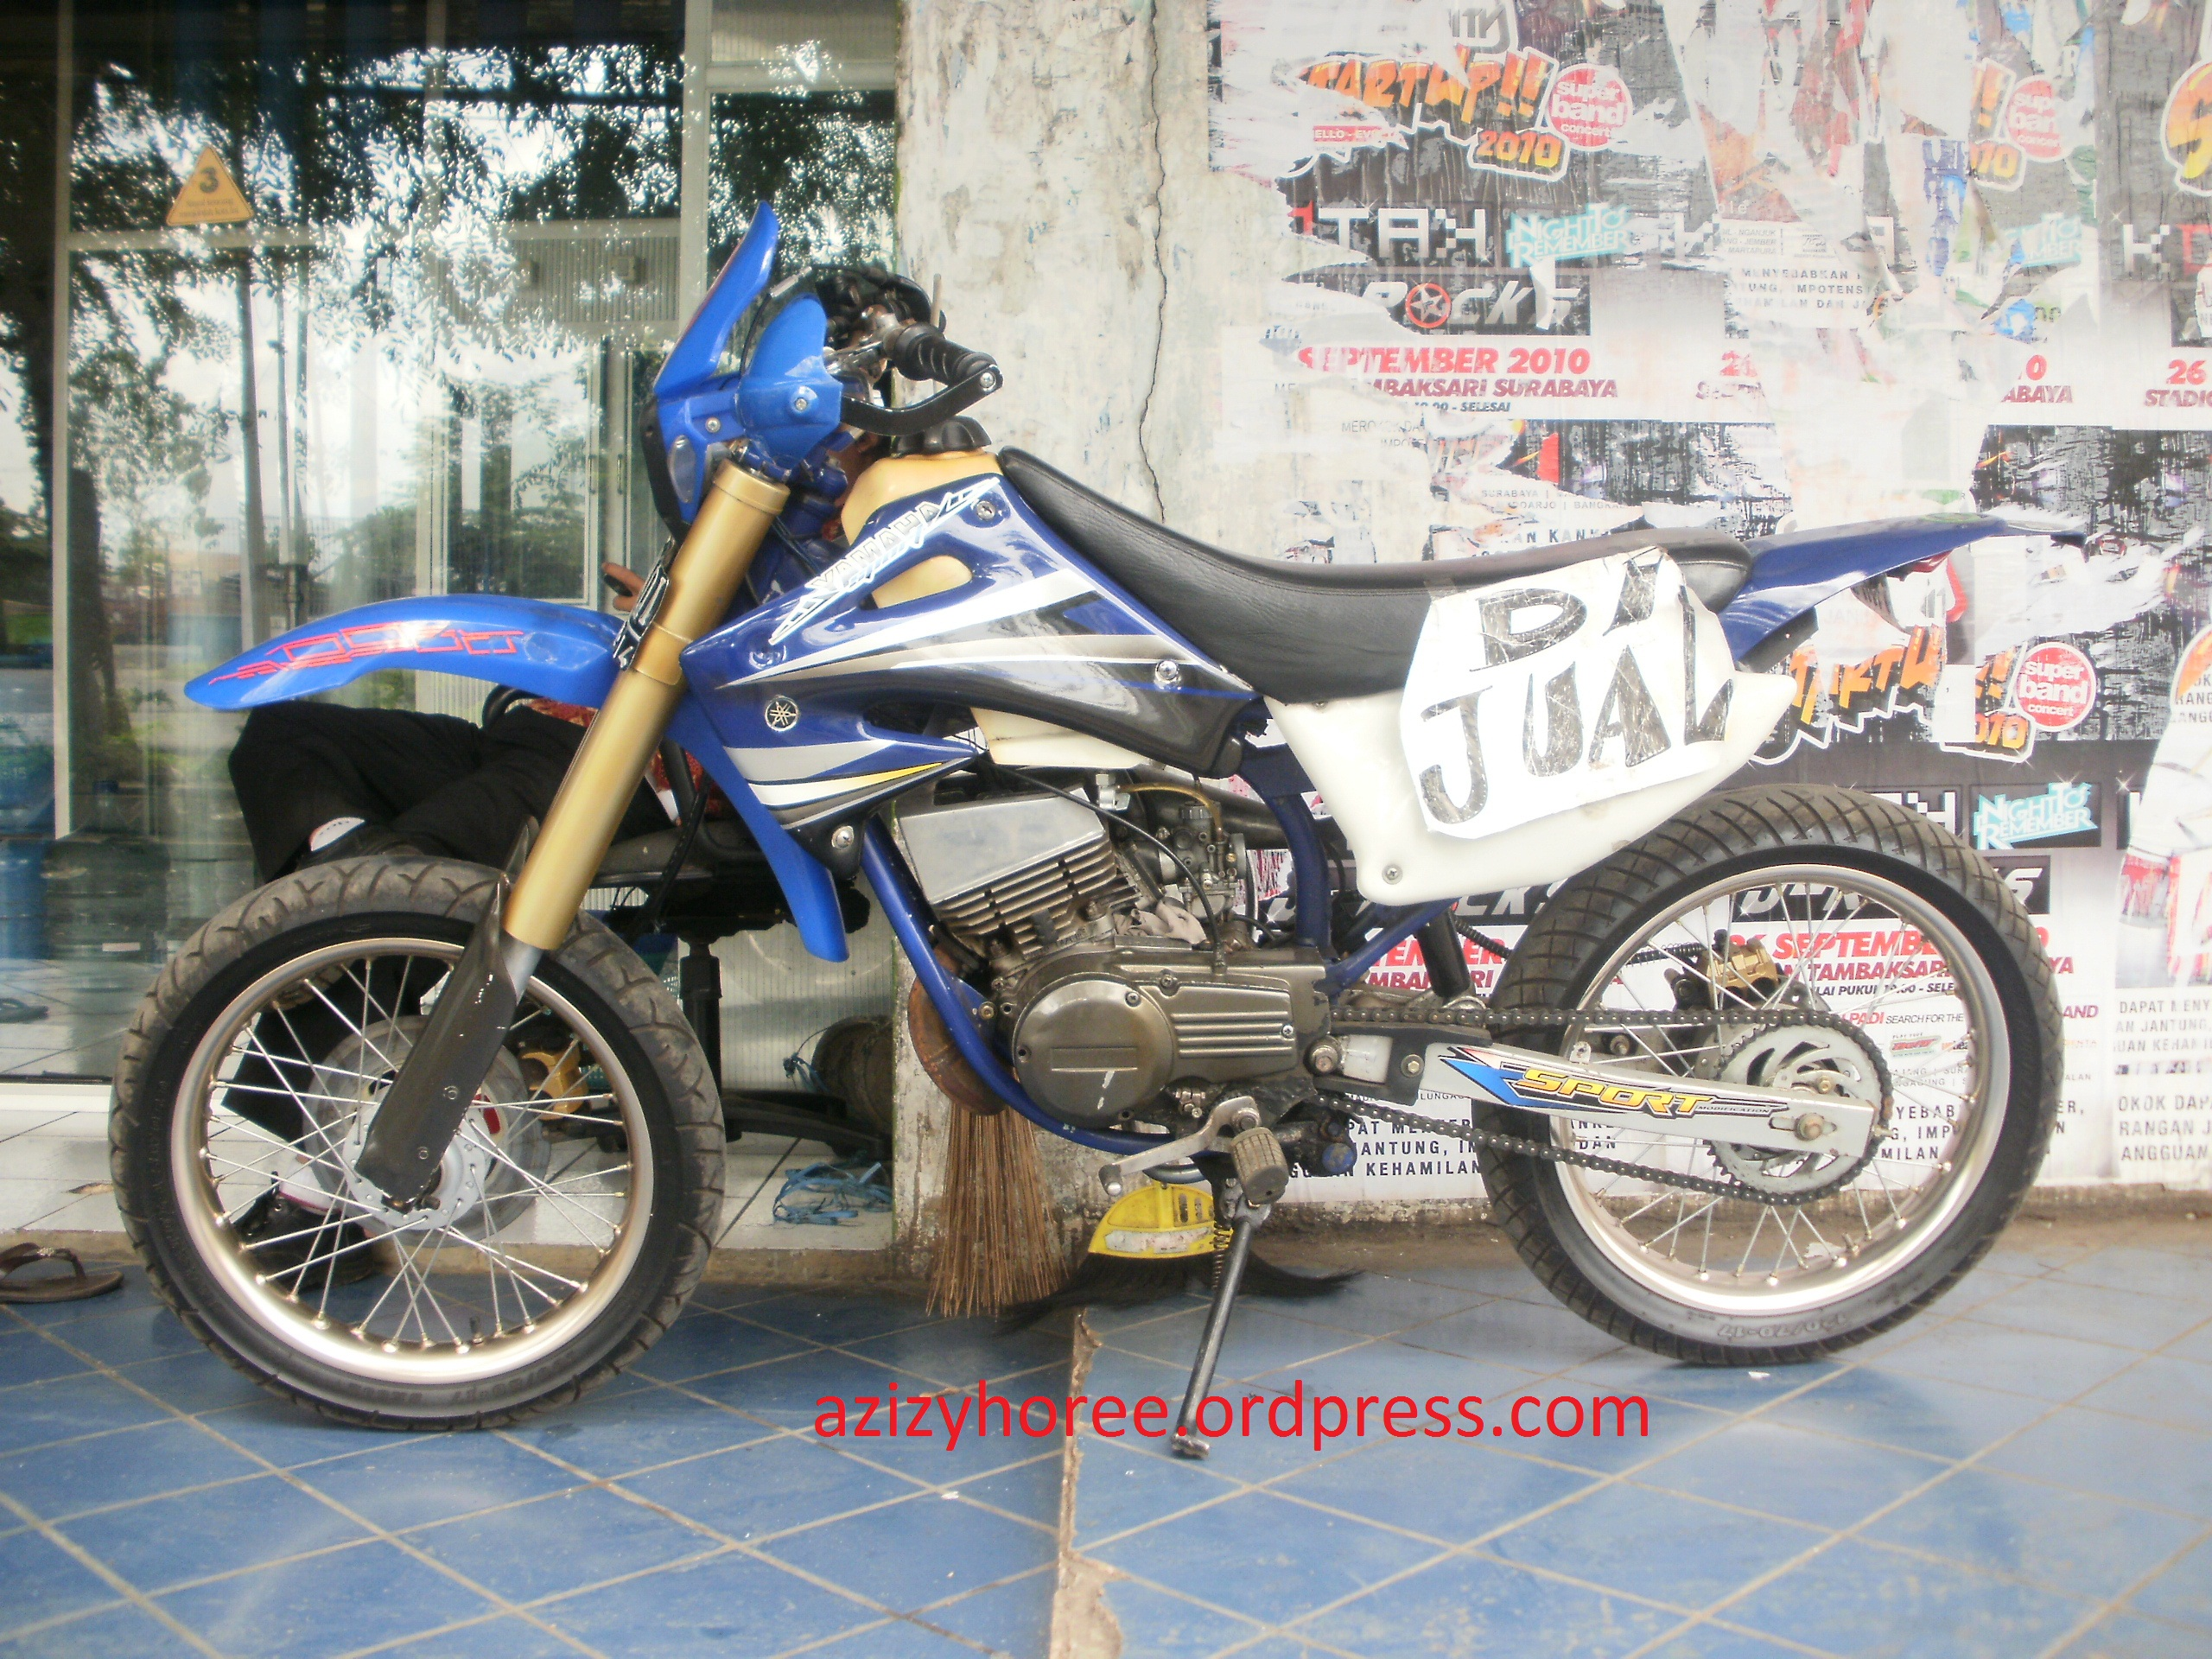 Modifikasi Super Motard Trail Yamaha Azizyhoree Blog